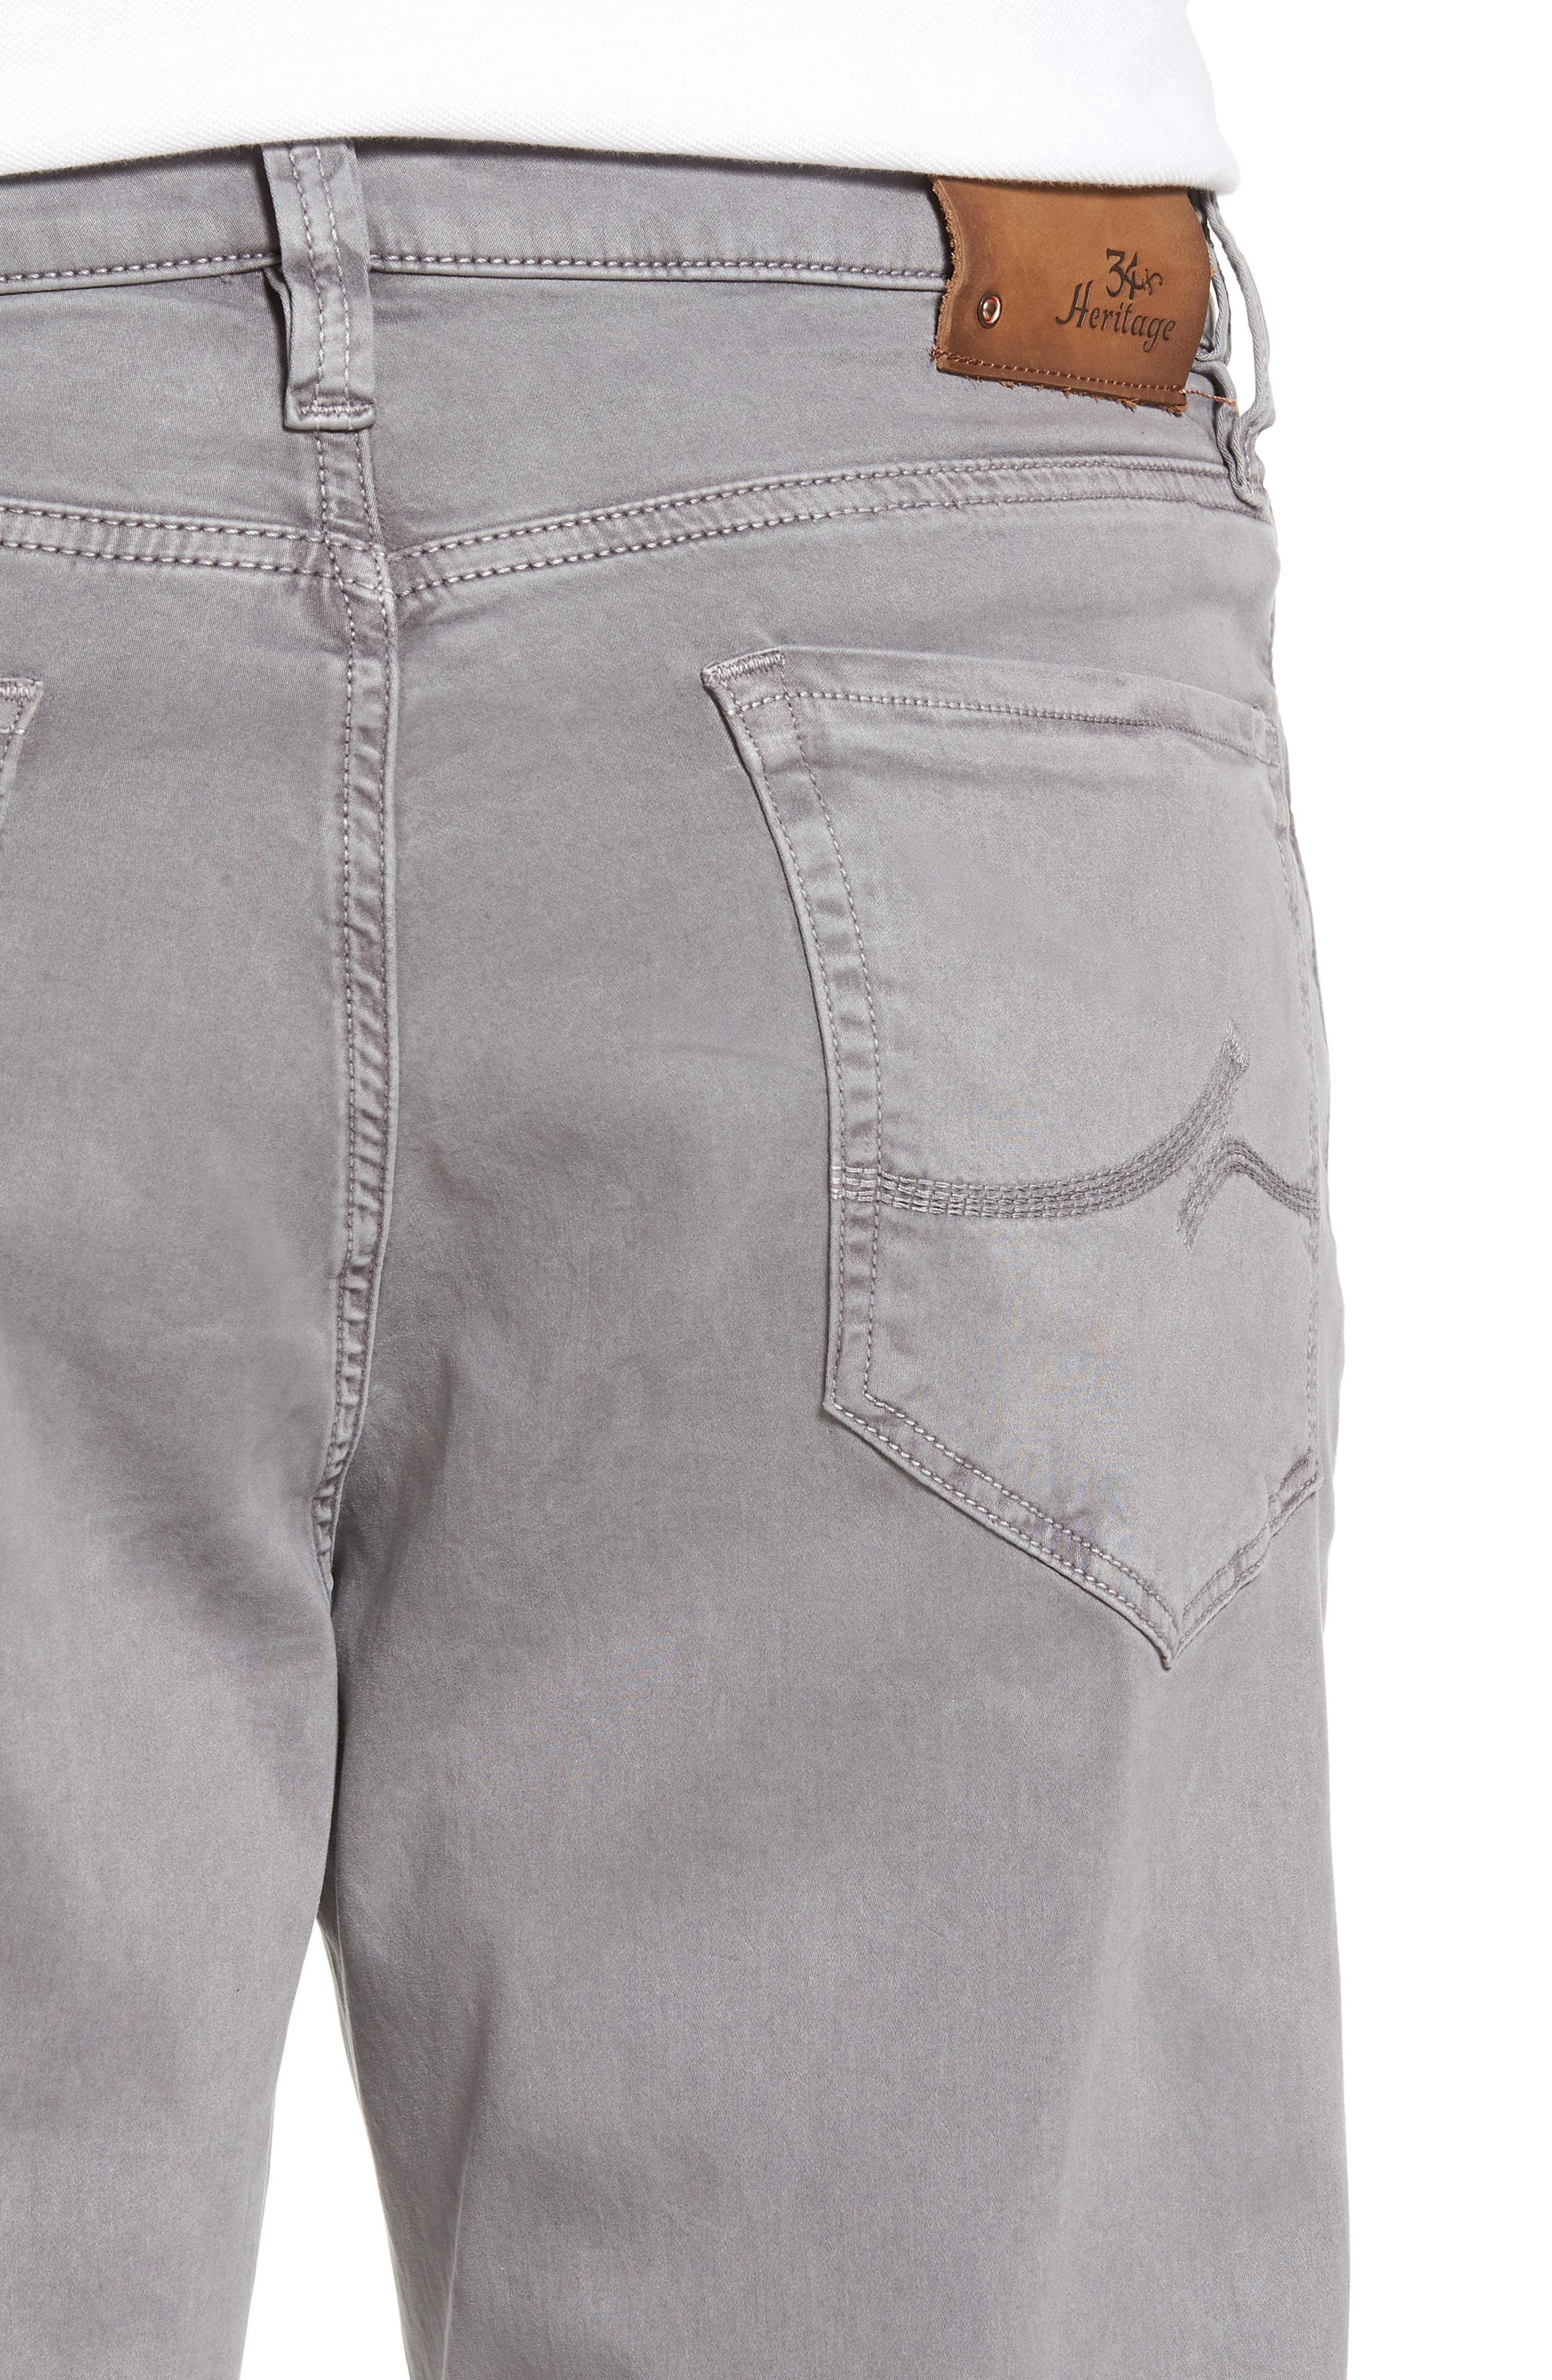 Charisma Relaxed Fit Twill Pants,                             Alternate thumbnail 4, color,                             SHARK TWILL